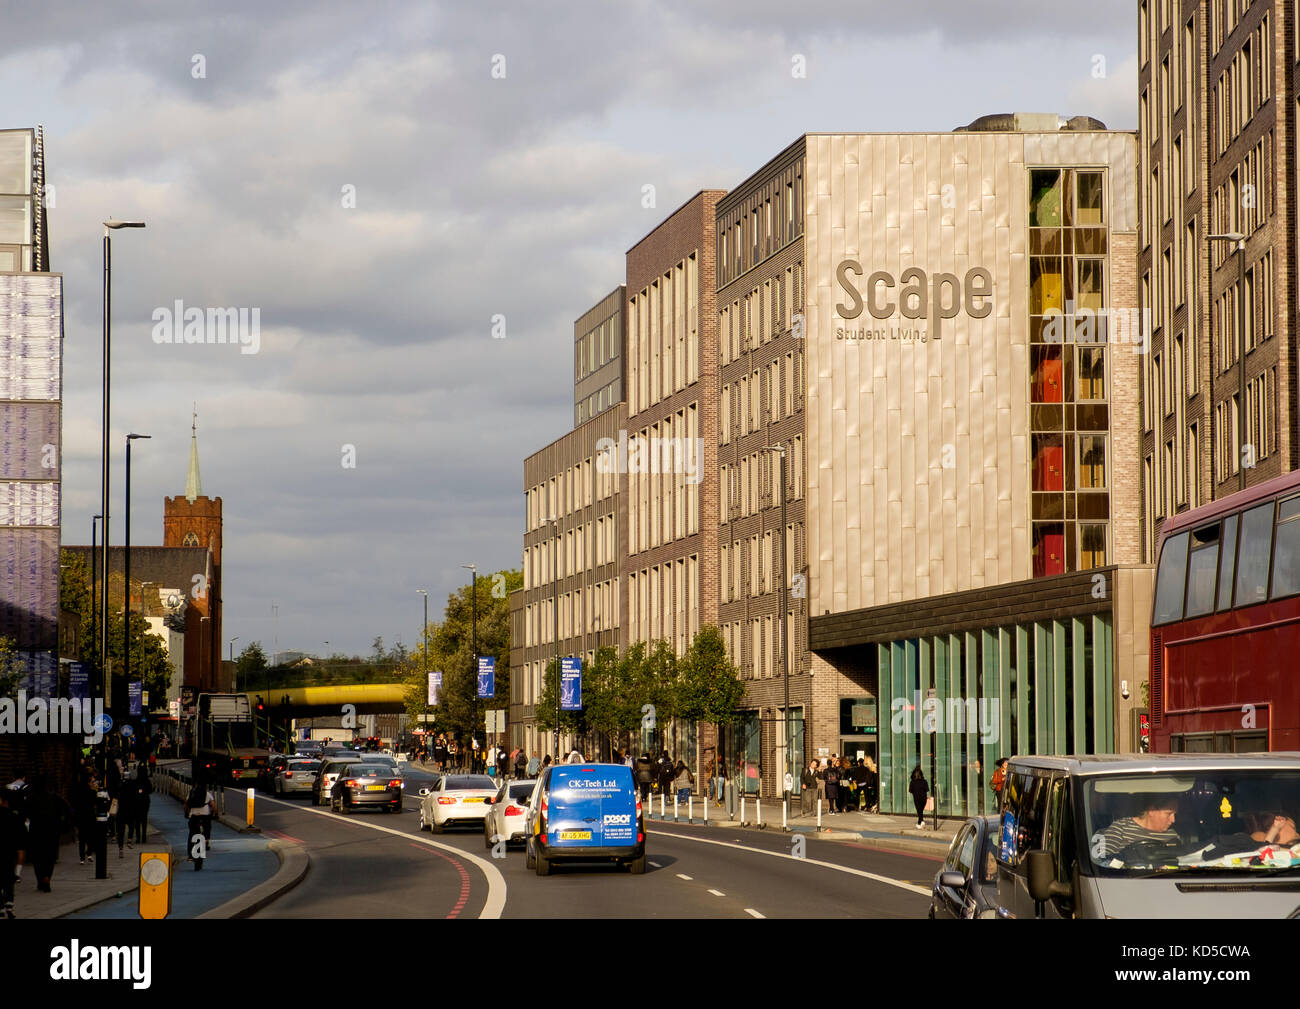 Scape Student Living student accomodation on the Mile End Road, London opposite Queen Mary College - Stock Image